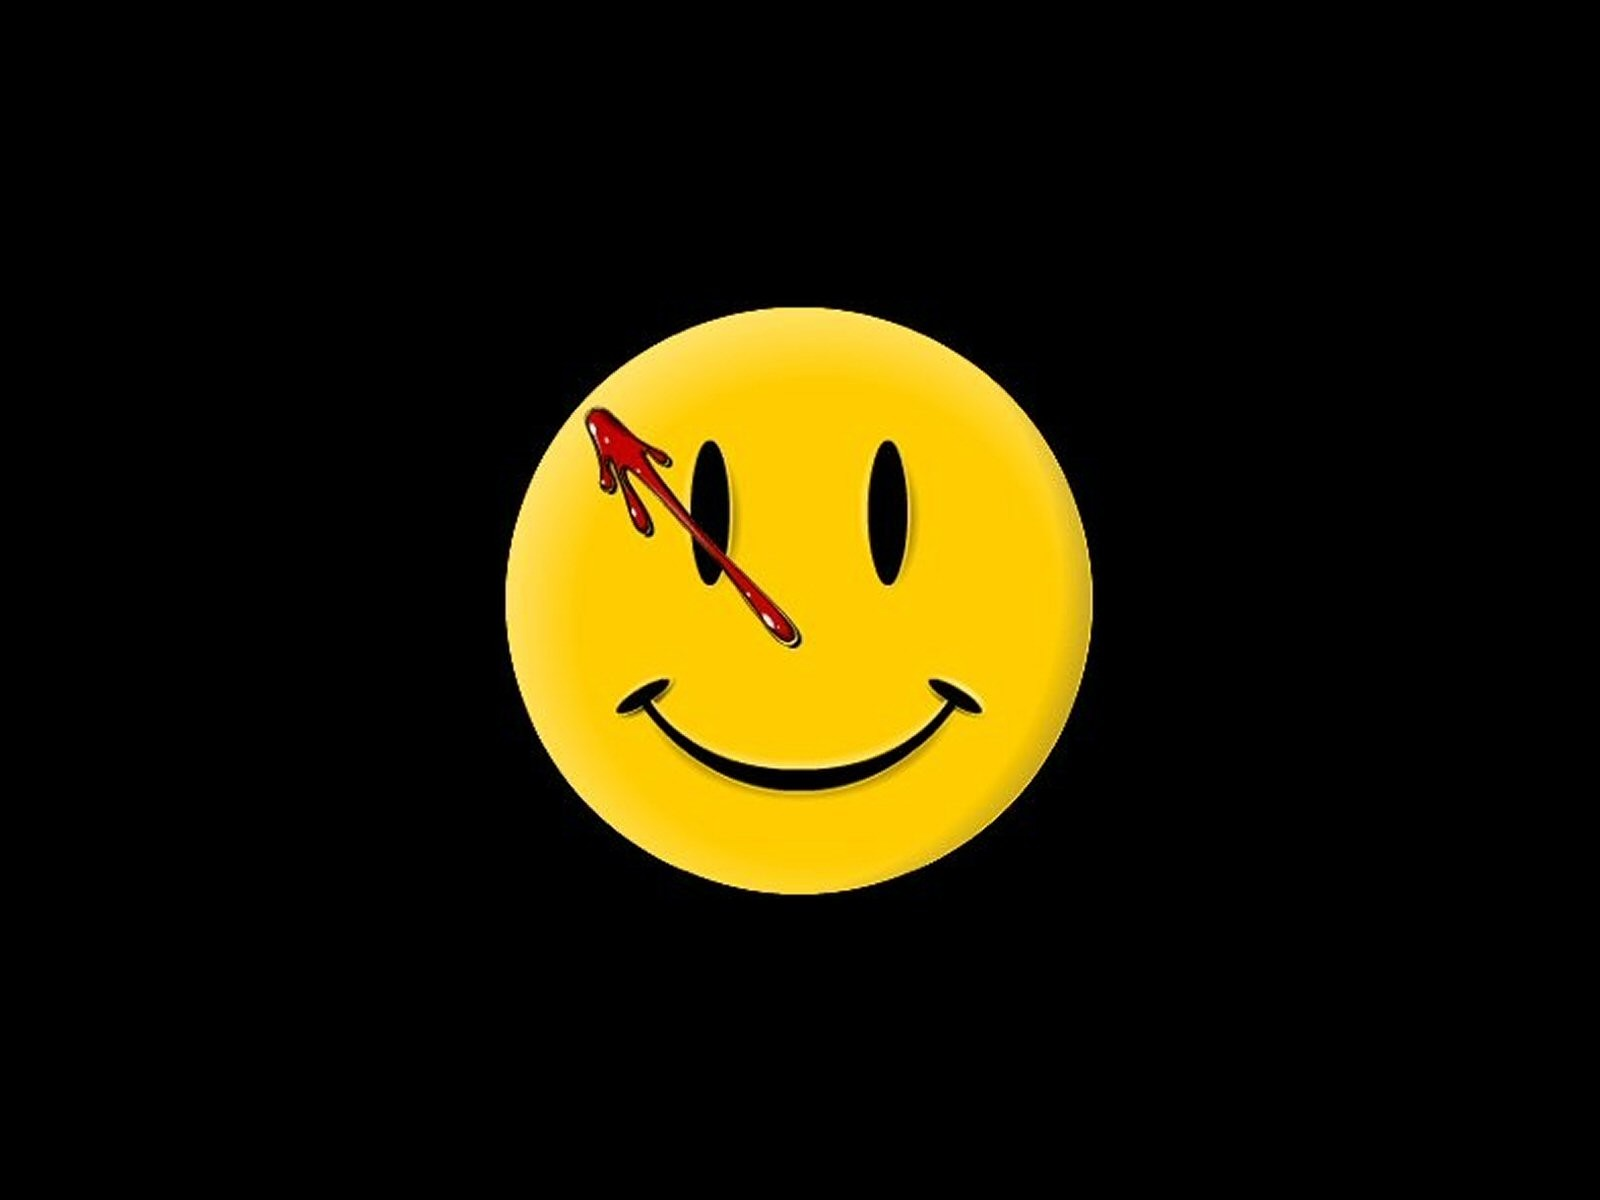 General 1600x1200 Watchmen happy face blood smiley simple background